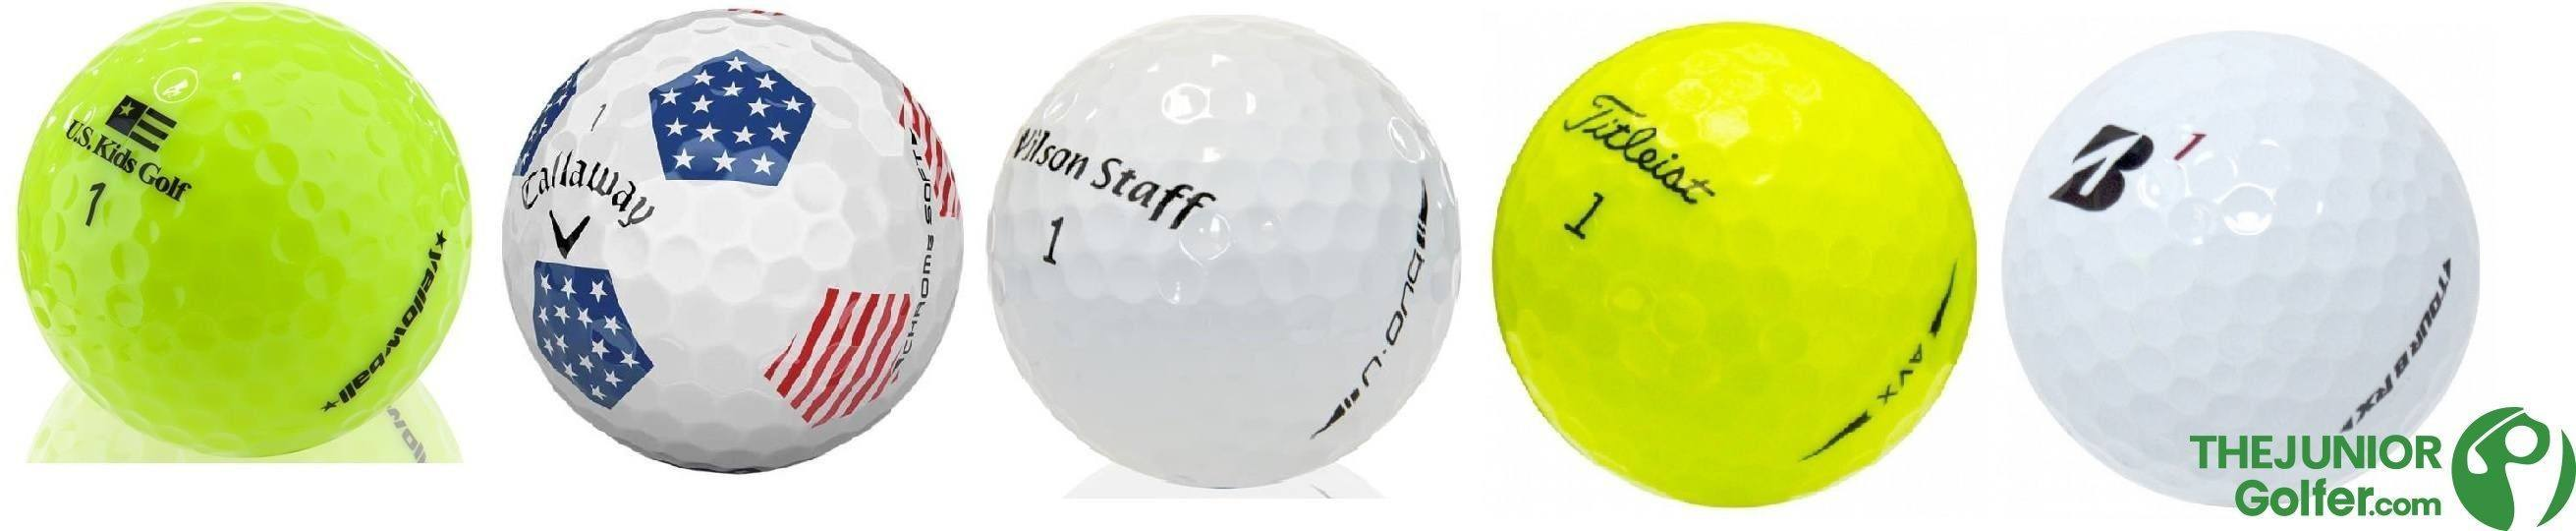 low compression golf ball